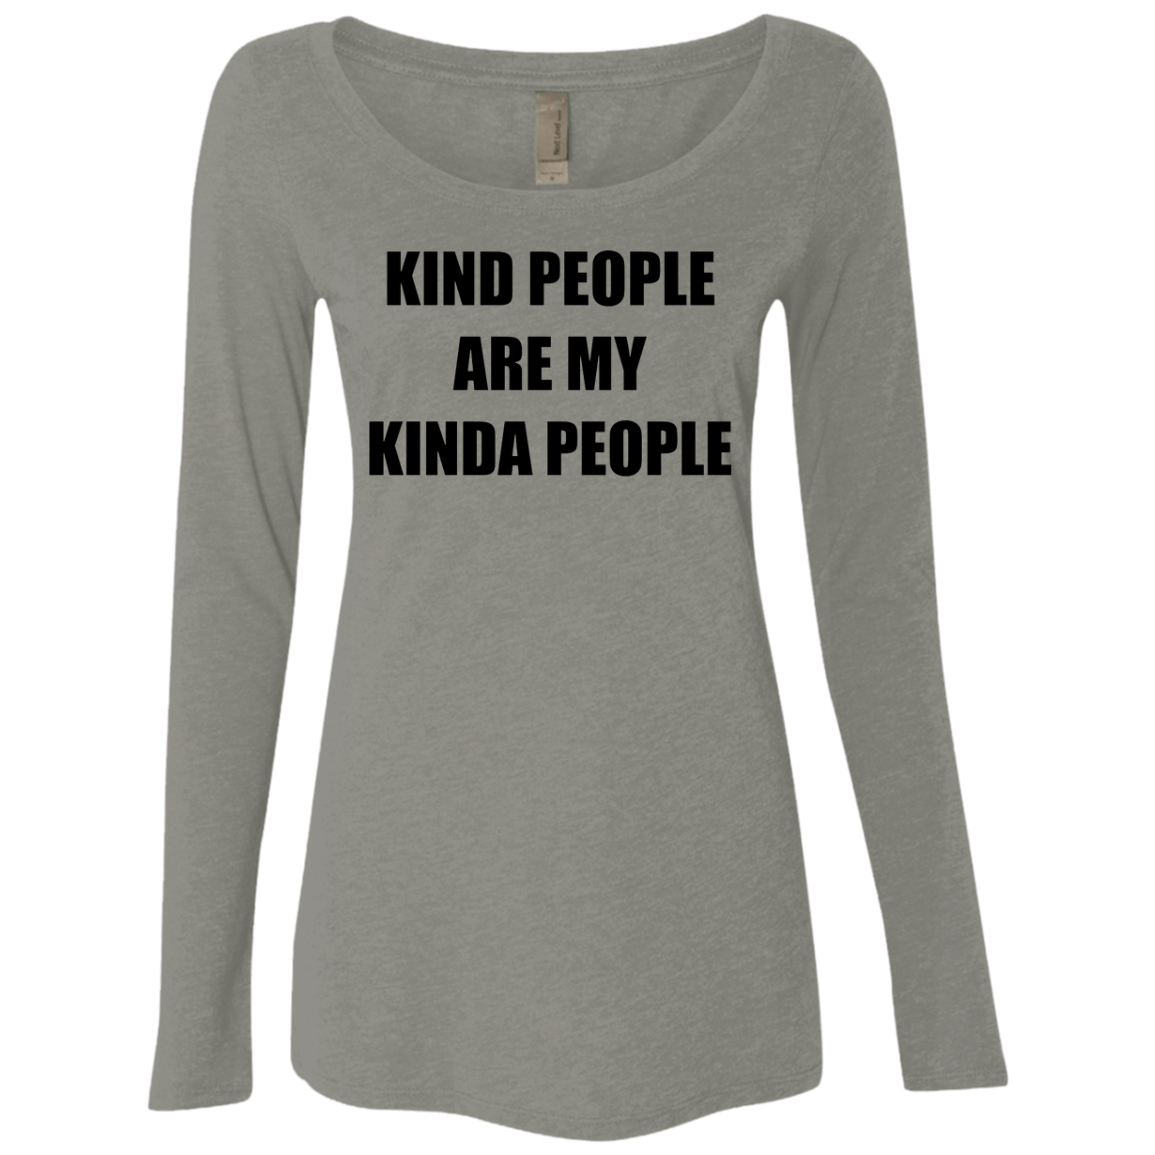 Kind People Are My Kinda People Women's Long Sleeve Tee